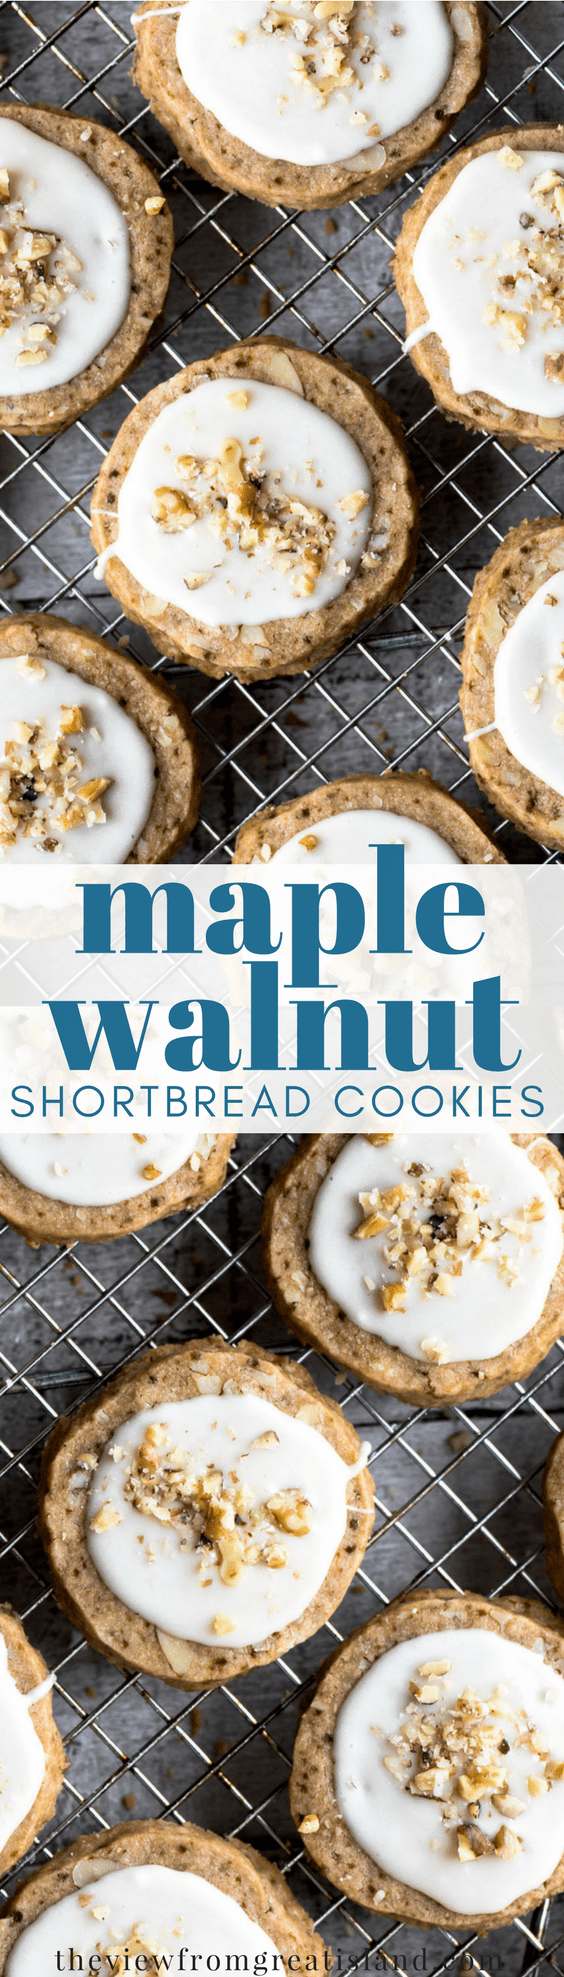 Maple Walnut Shortbread Cookies ~ maple infused and packed with nuts, this takes my classic slice and bake shortbread cookie recipe to a whole new level. #cookies #sliceandbake #holidaycookies #shortbread #shortbreadcookies #walnuts #maple #frostedcookies #Christmascookies #dessert #maplewalnut